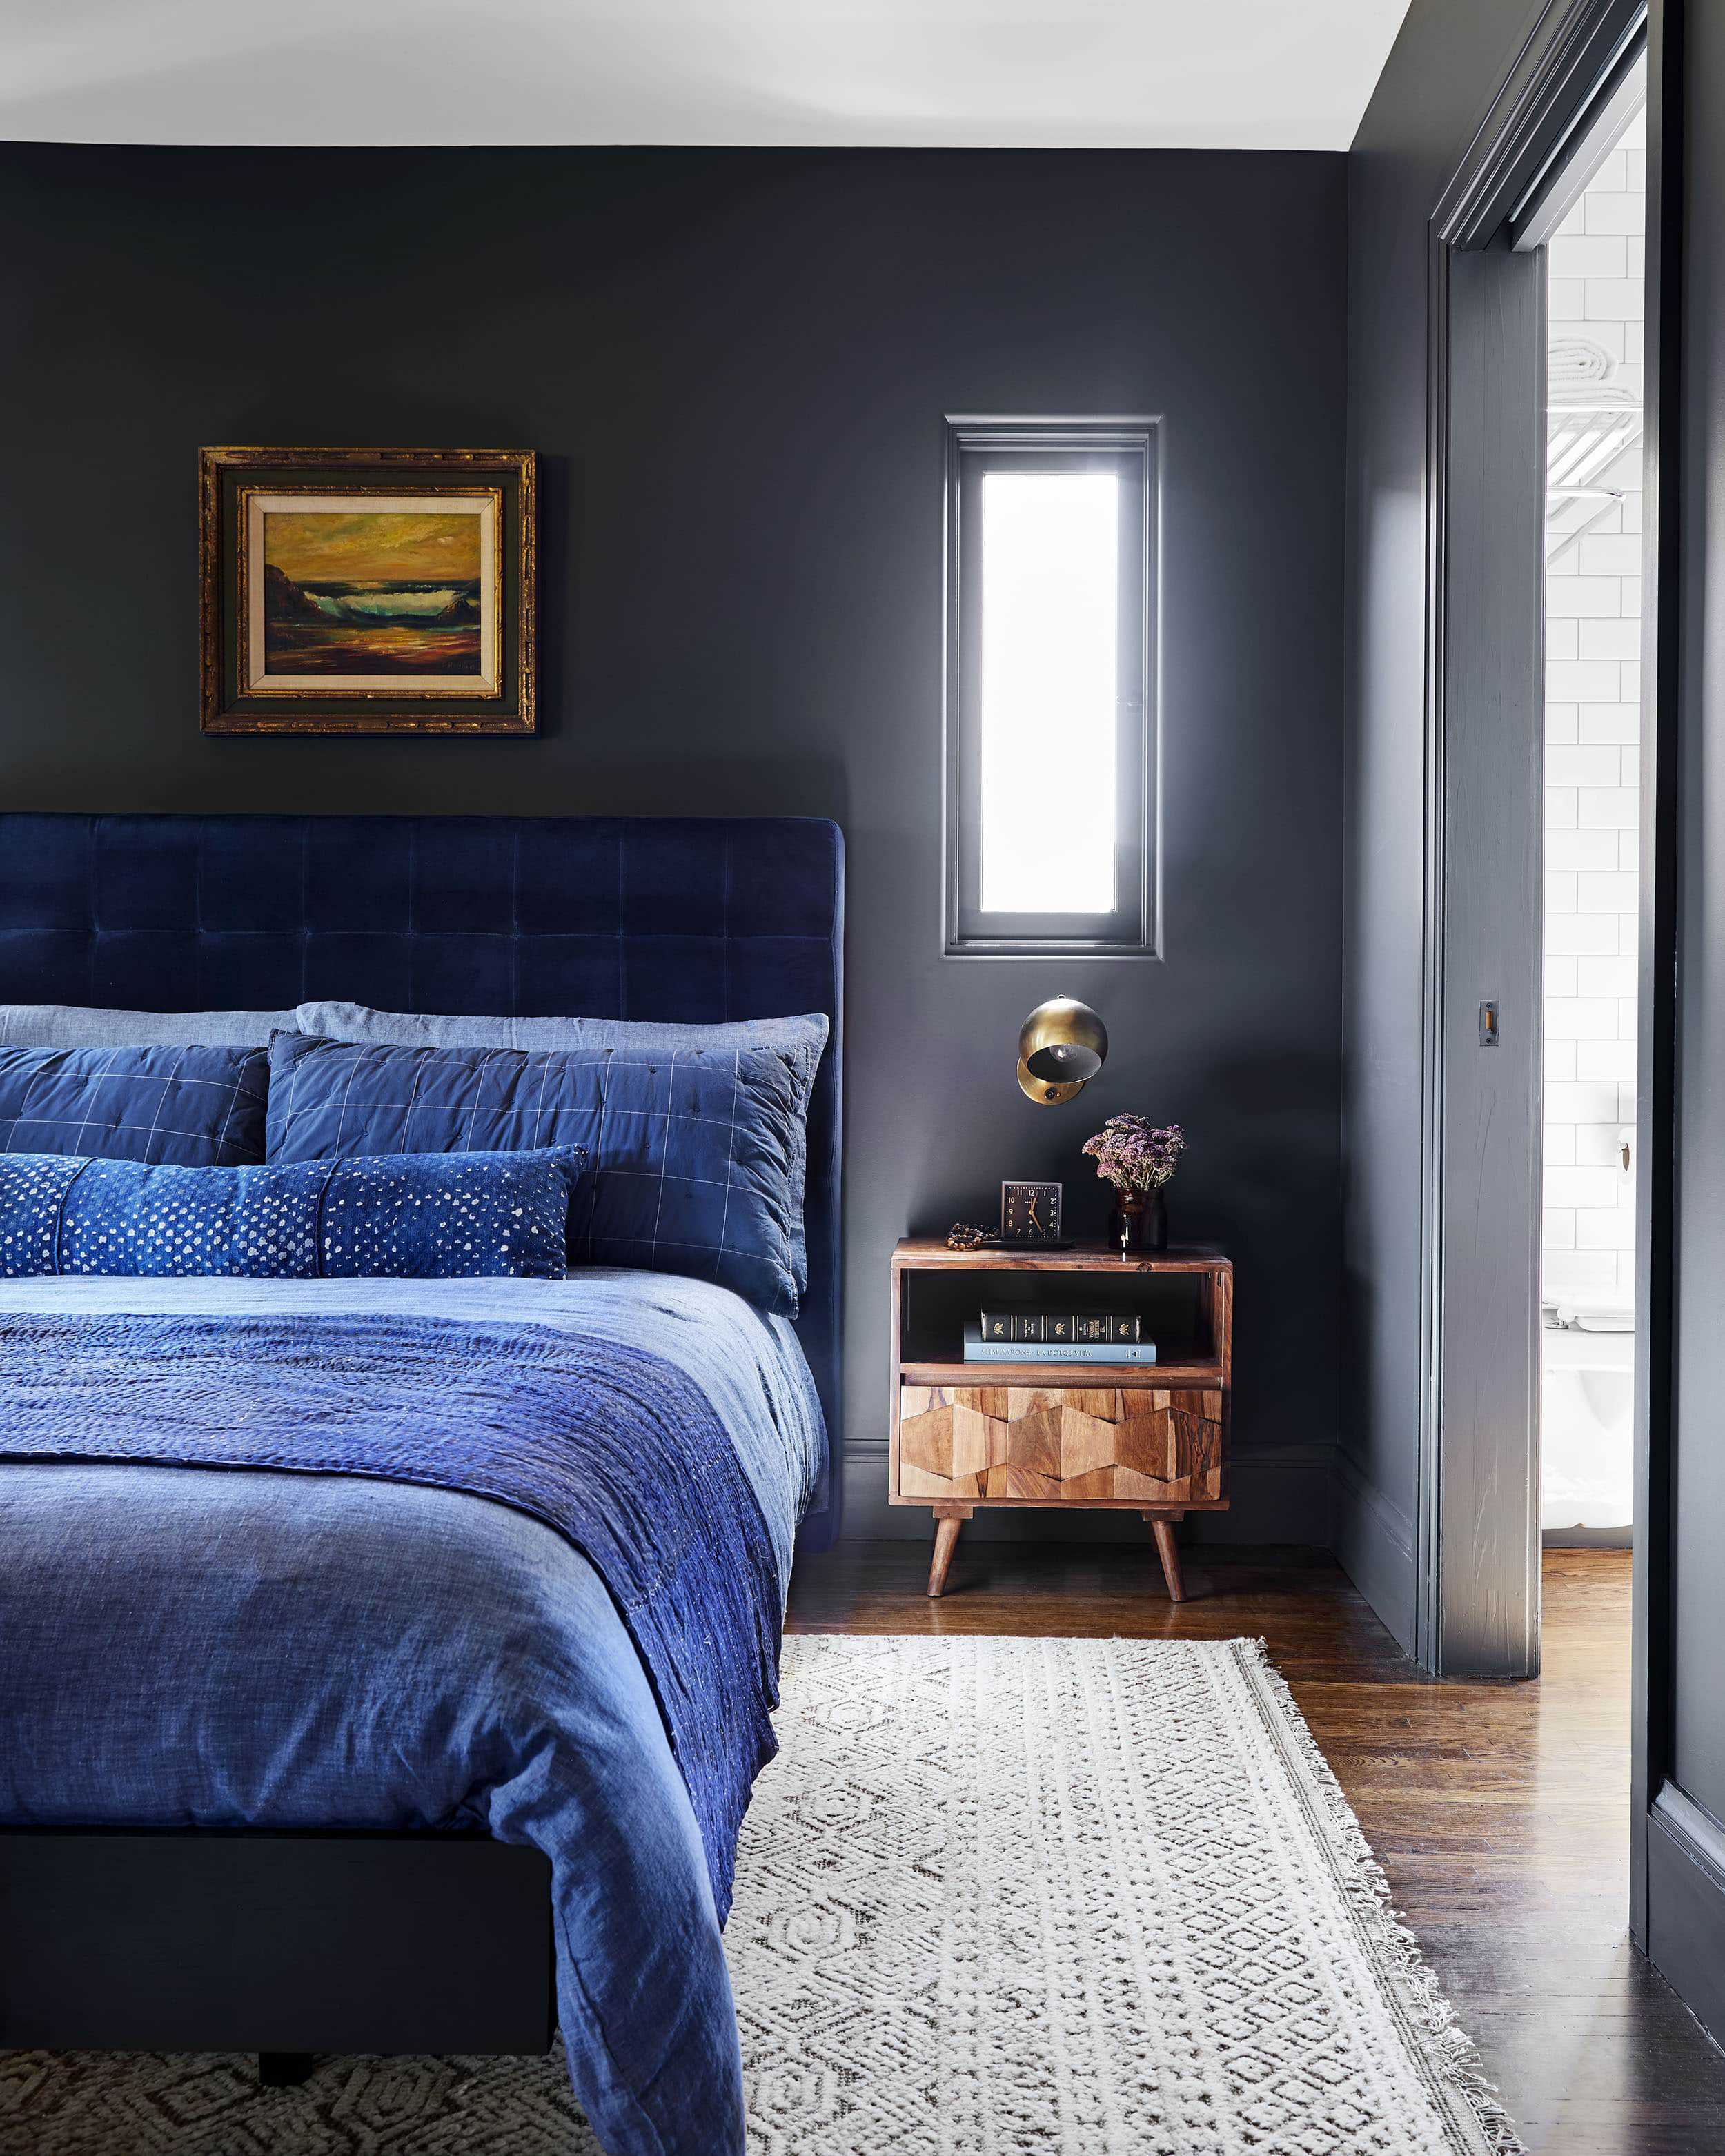 7 Keys To Know To Nail That Moody Yet Modern Look In Your Bedroom